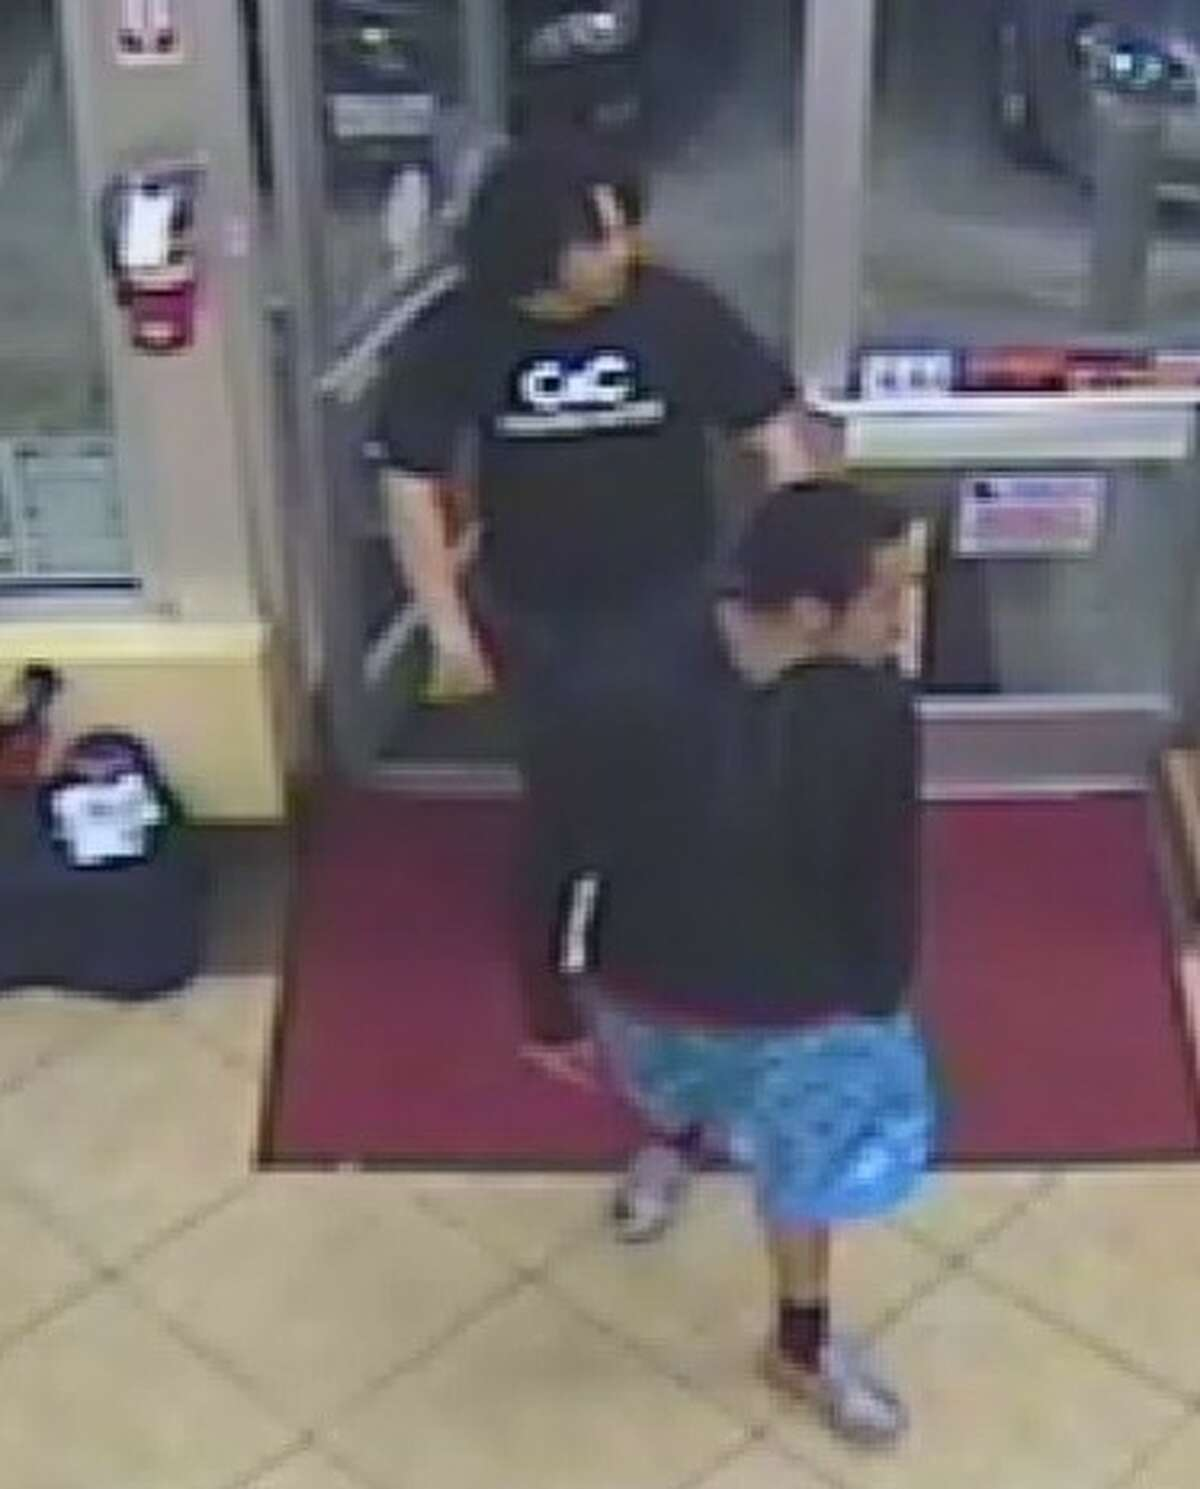 Video footage of the two suspects sought by authorites for an aggravated assault case at a Food Mart Exxon, located at 17130 Beechnut St. in the Mission Bend area, where they pulled out a gun and fired shots multiple shots at two people with whom they had a conflict.